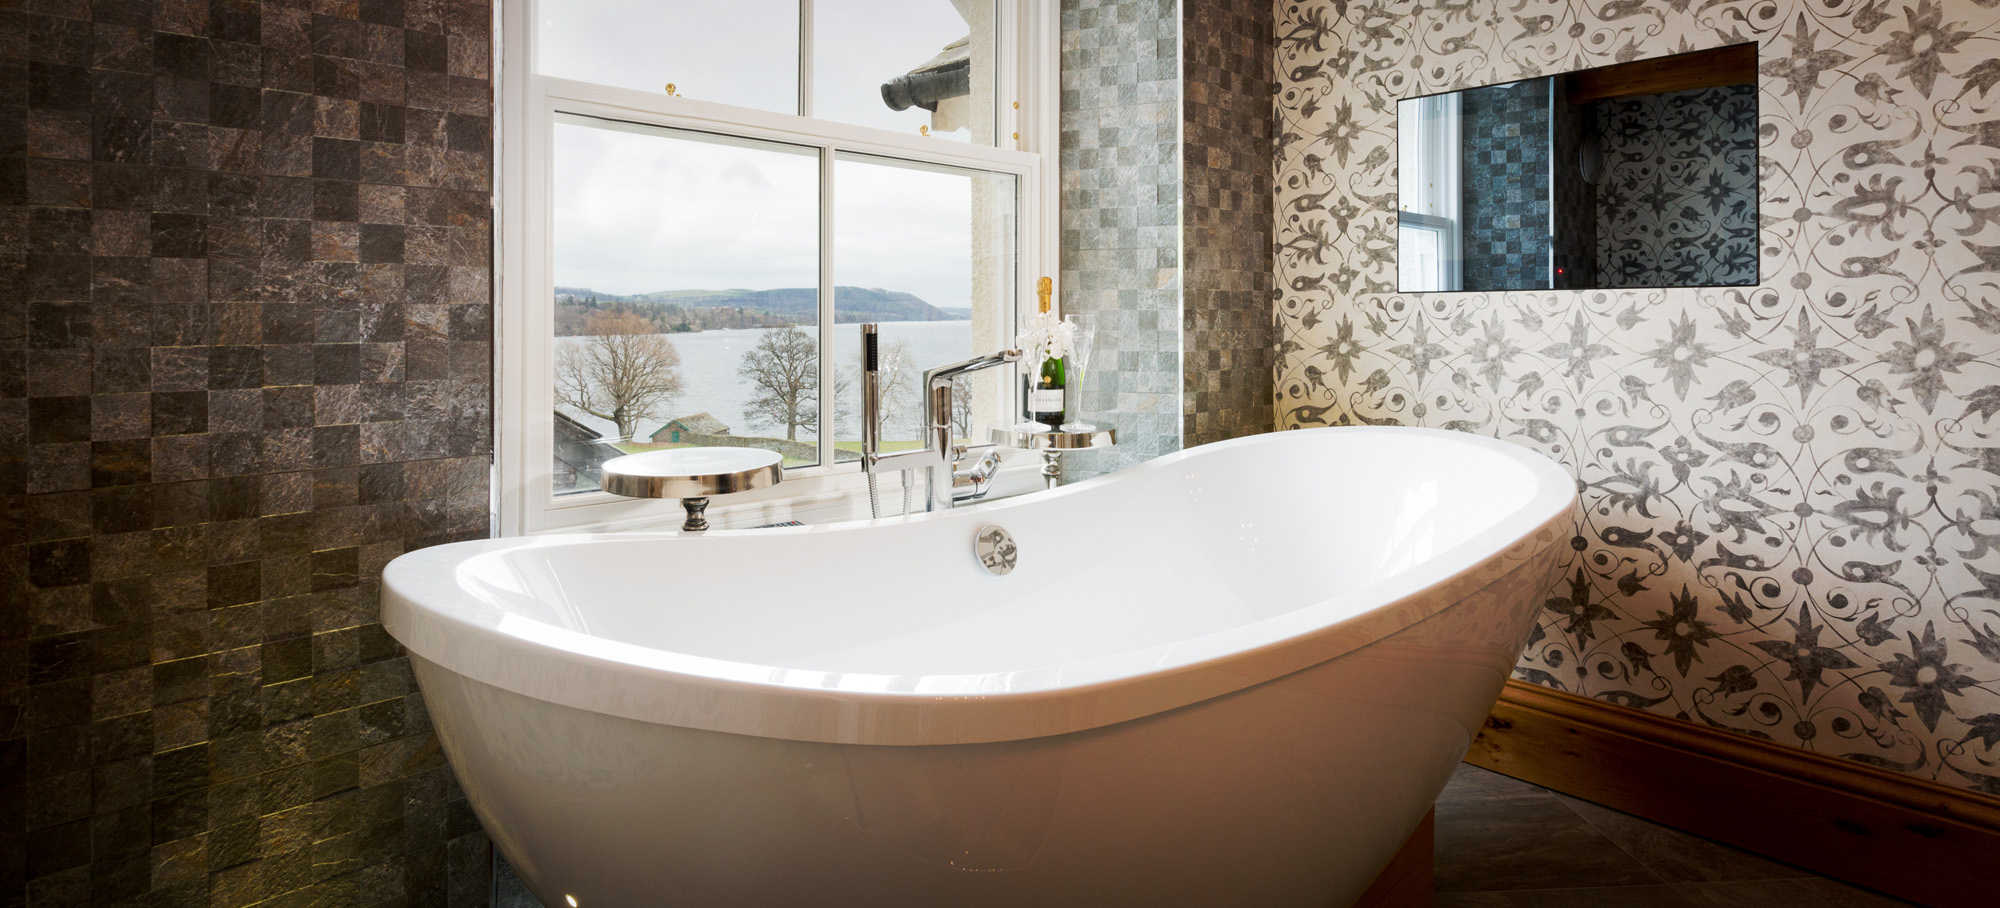 Bath at Waternook, Howtown. Overlooking Ullswater in the Lake District, UK. Copyright Ben Barden Photography Ltd. 2015